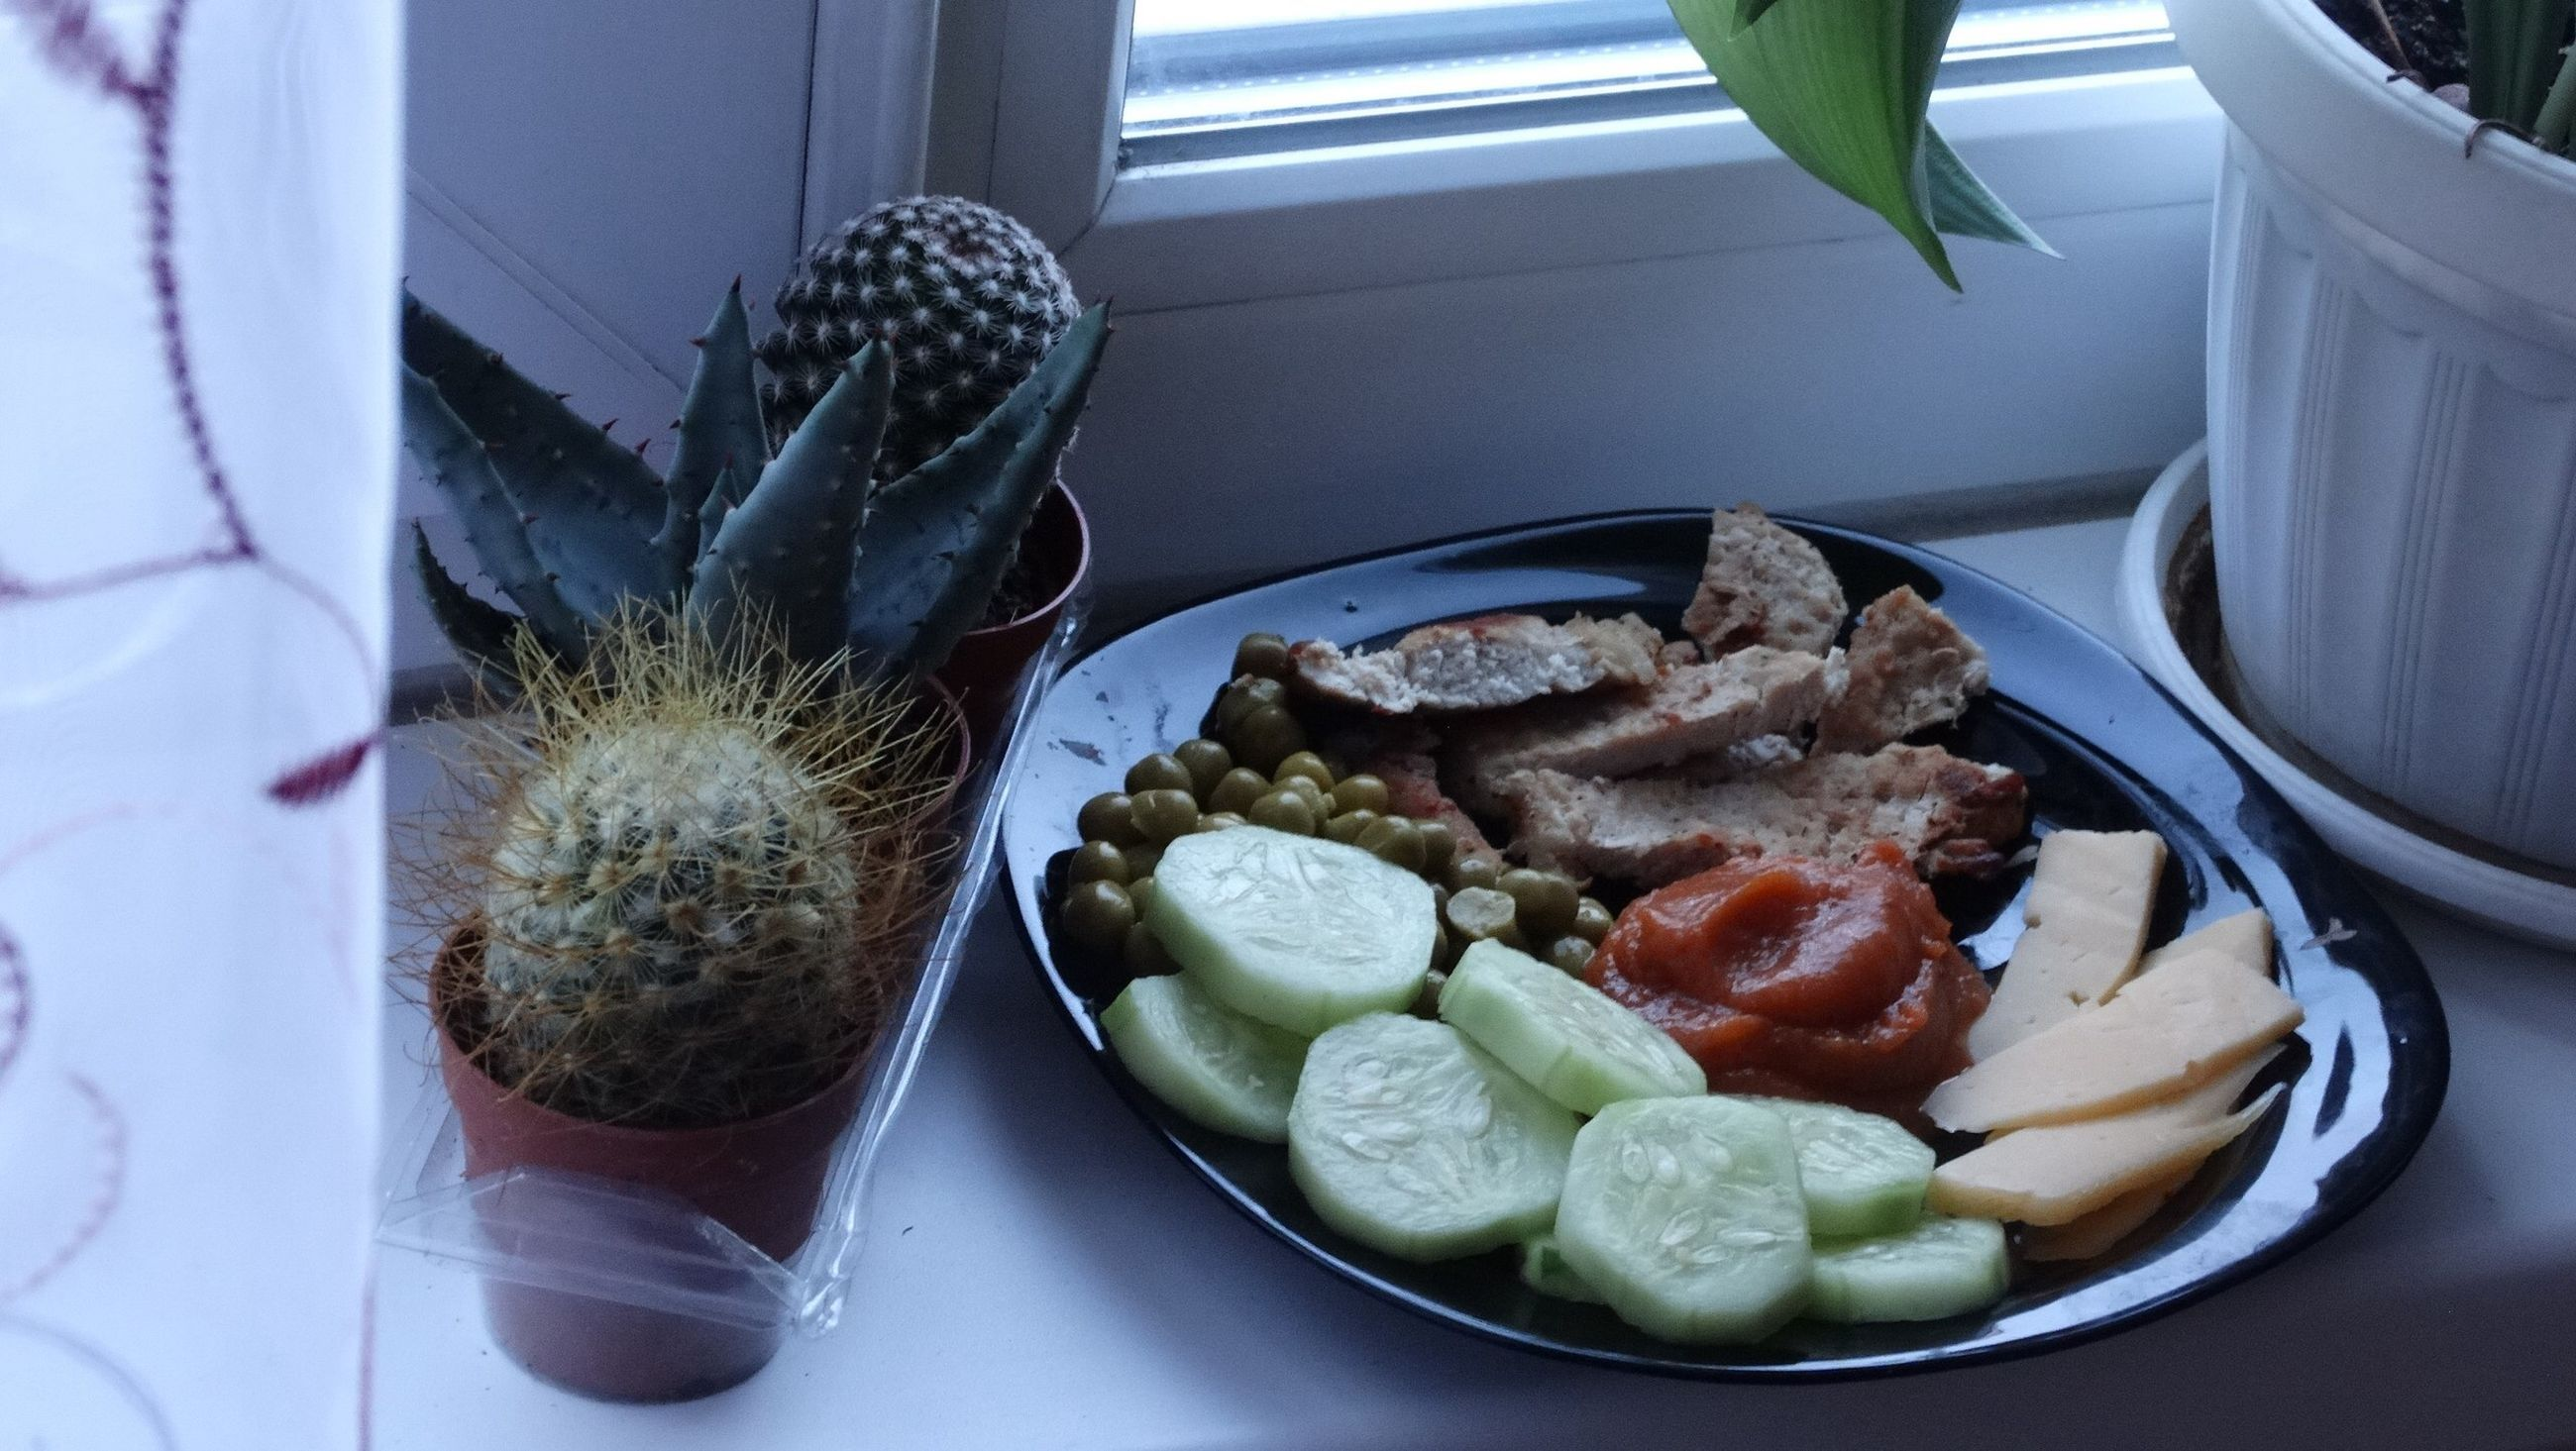 food and drink, food, freshness, indoors, healthy eating, table, ready-to-eat, plate, still life, serving size, meal, high angle view, bowl, close-up, served, meat, vegetable, salad, seafood, no people